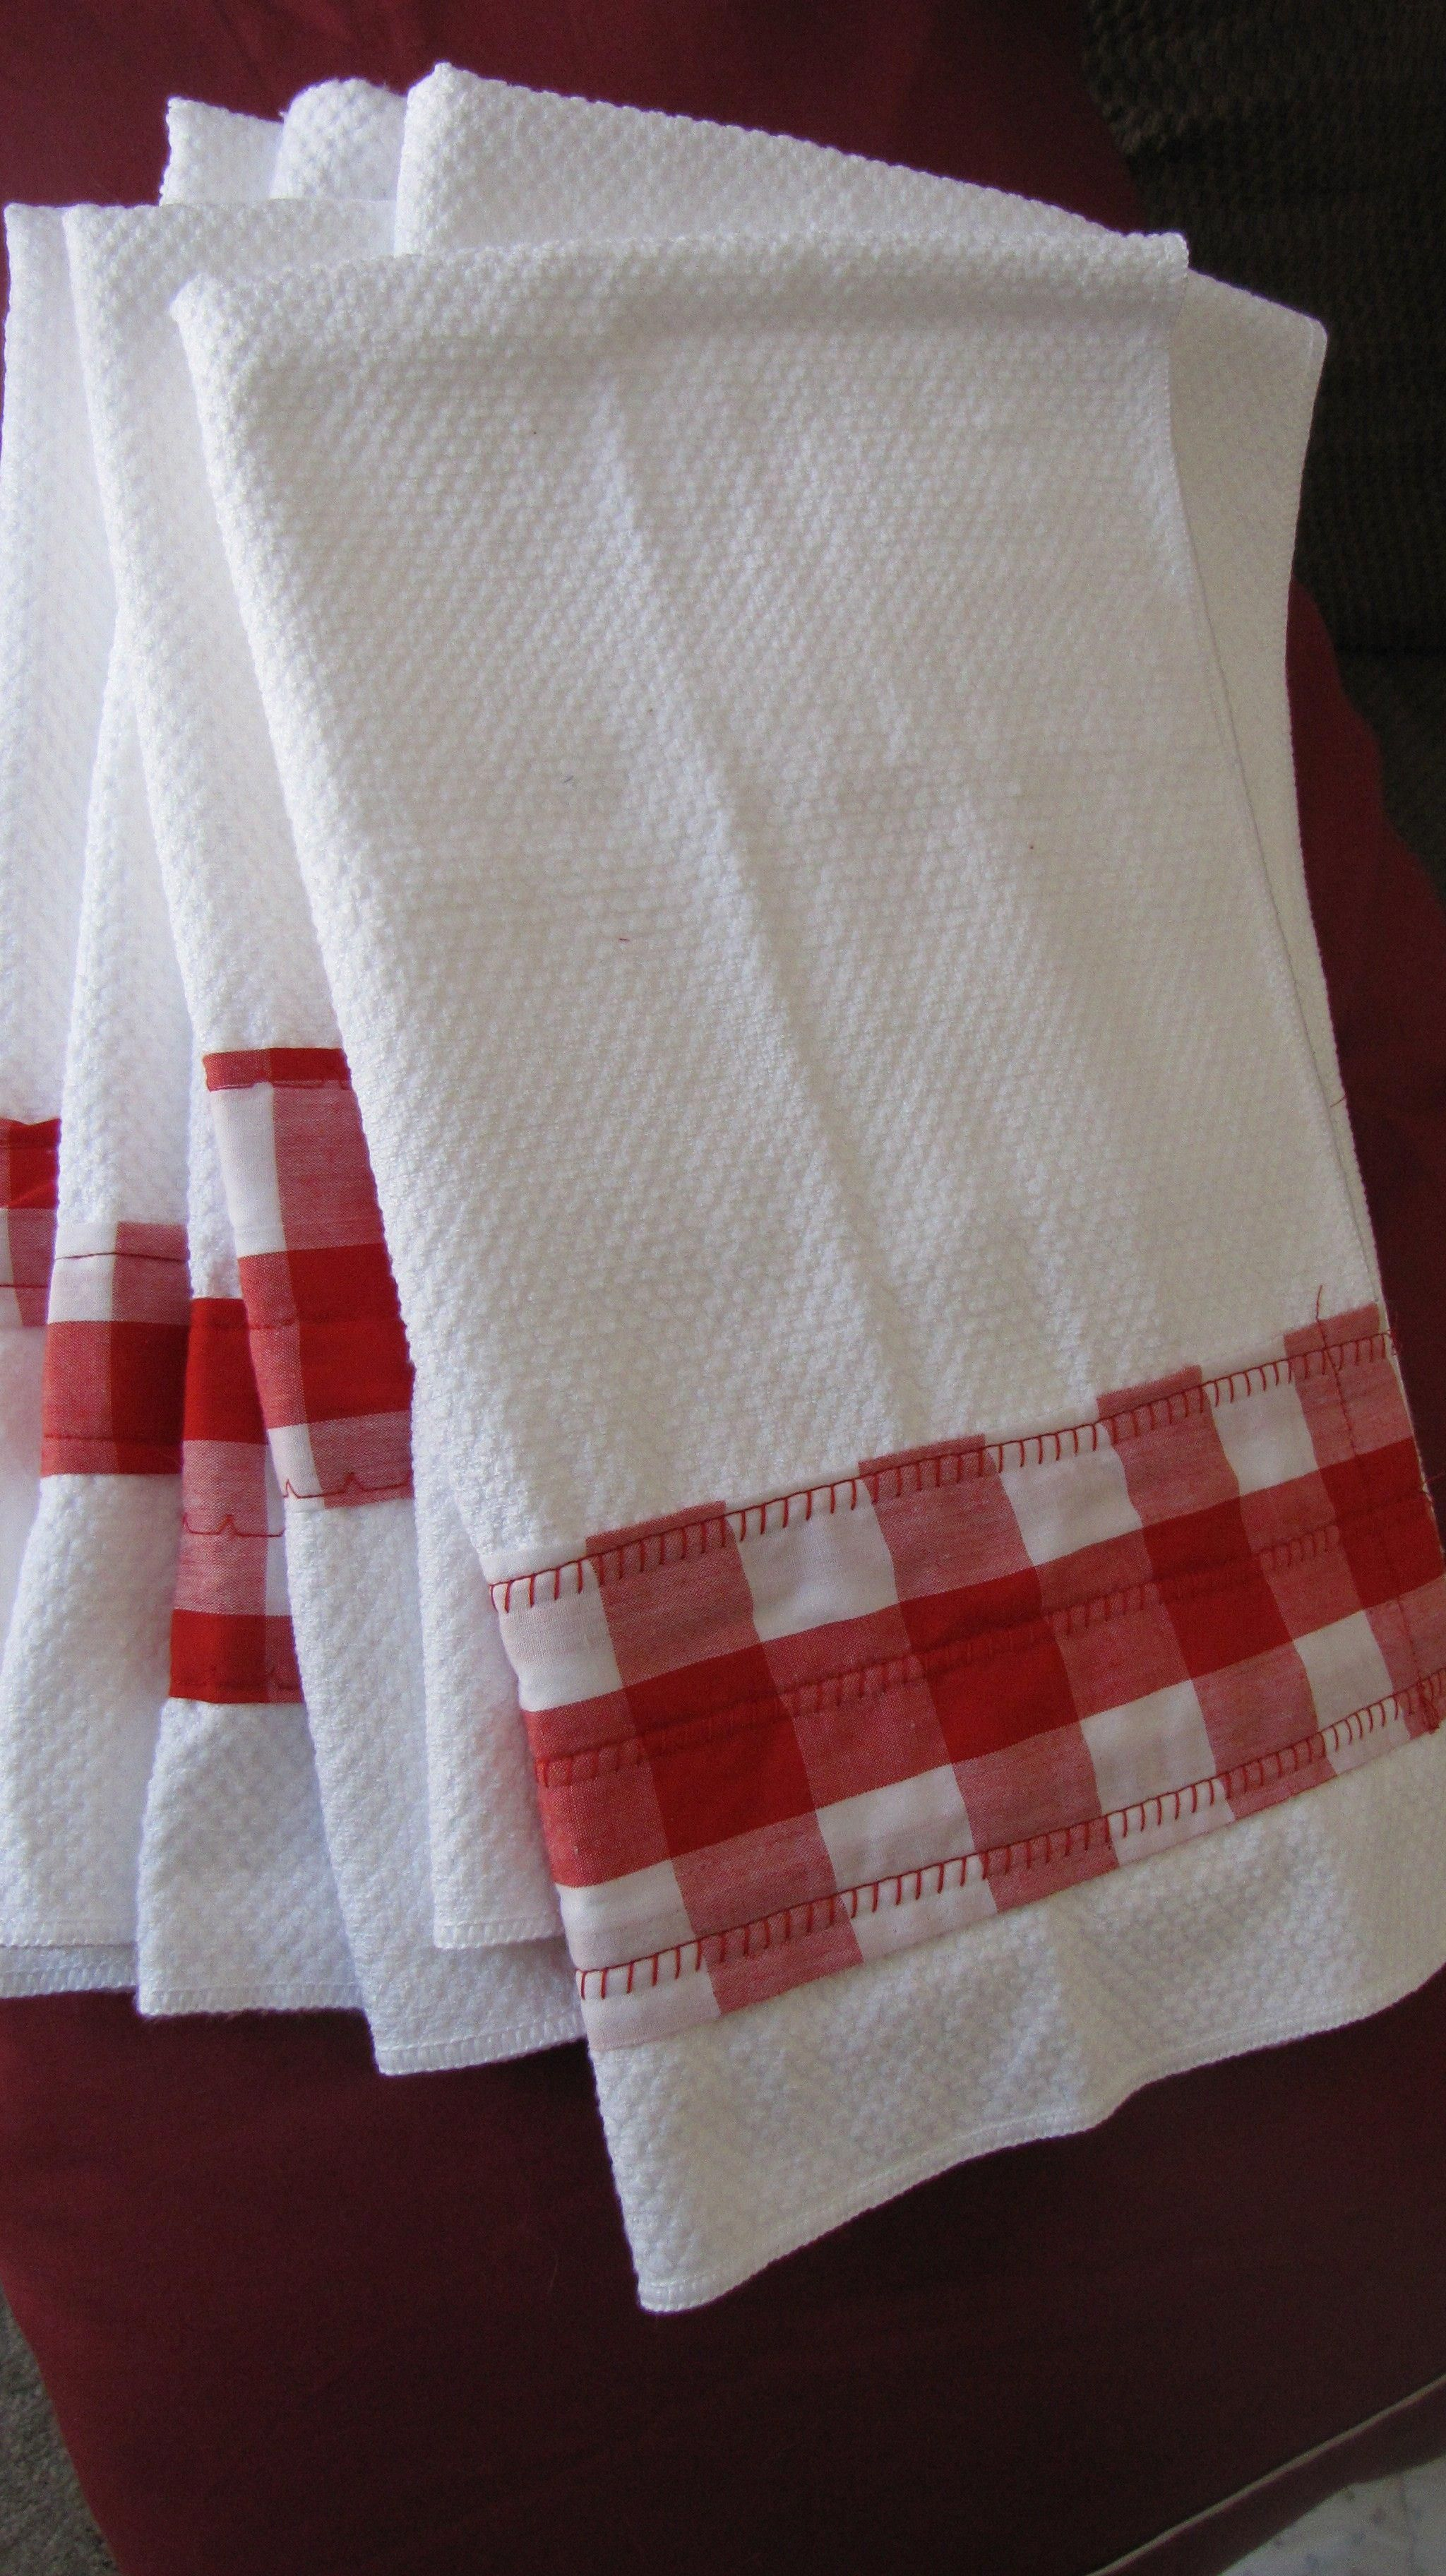 Gingham Sewed To Cheap Walmart Kitchen Towels To Decorate Them Decoratingideasforbathroomtowels Sewing Easy Sewing Kitchen Towels